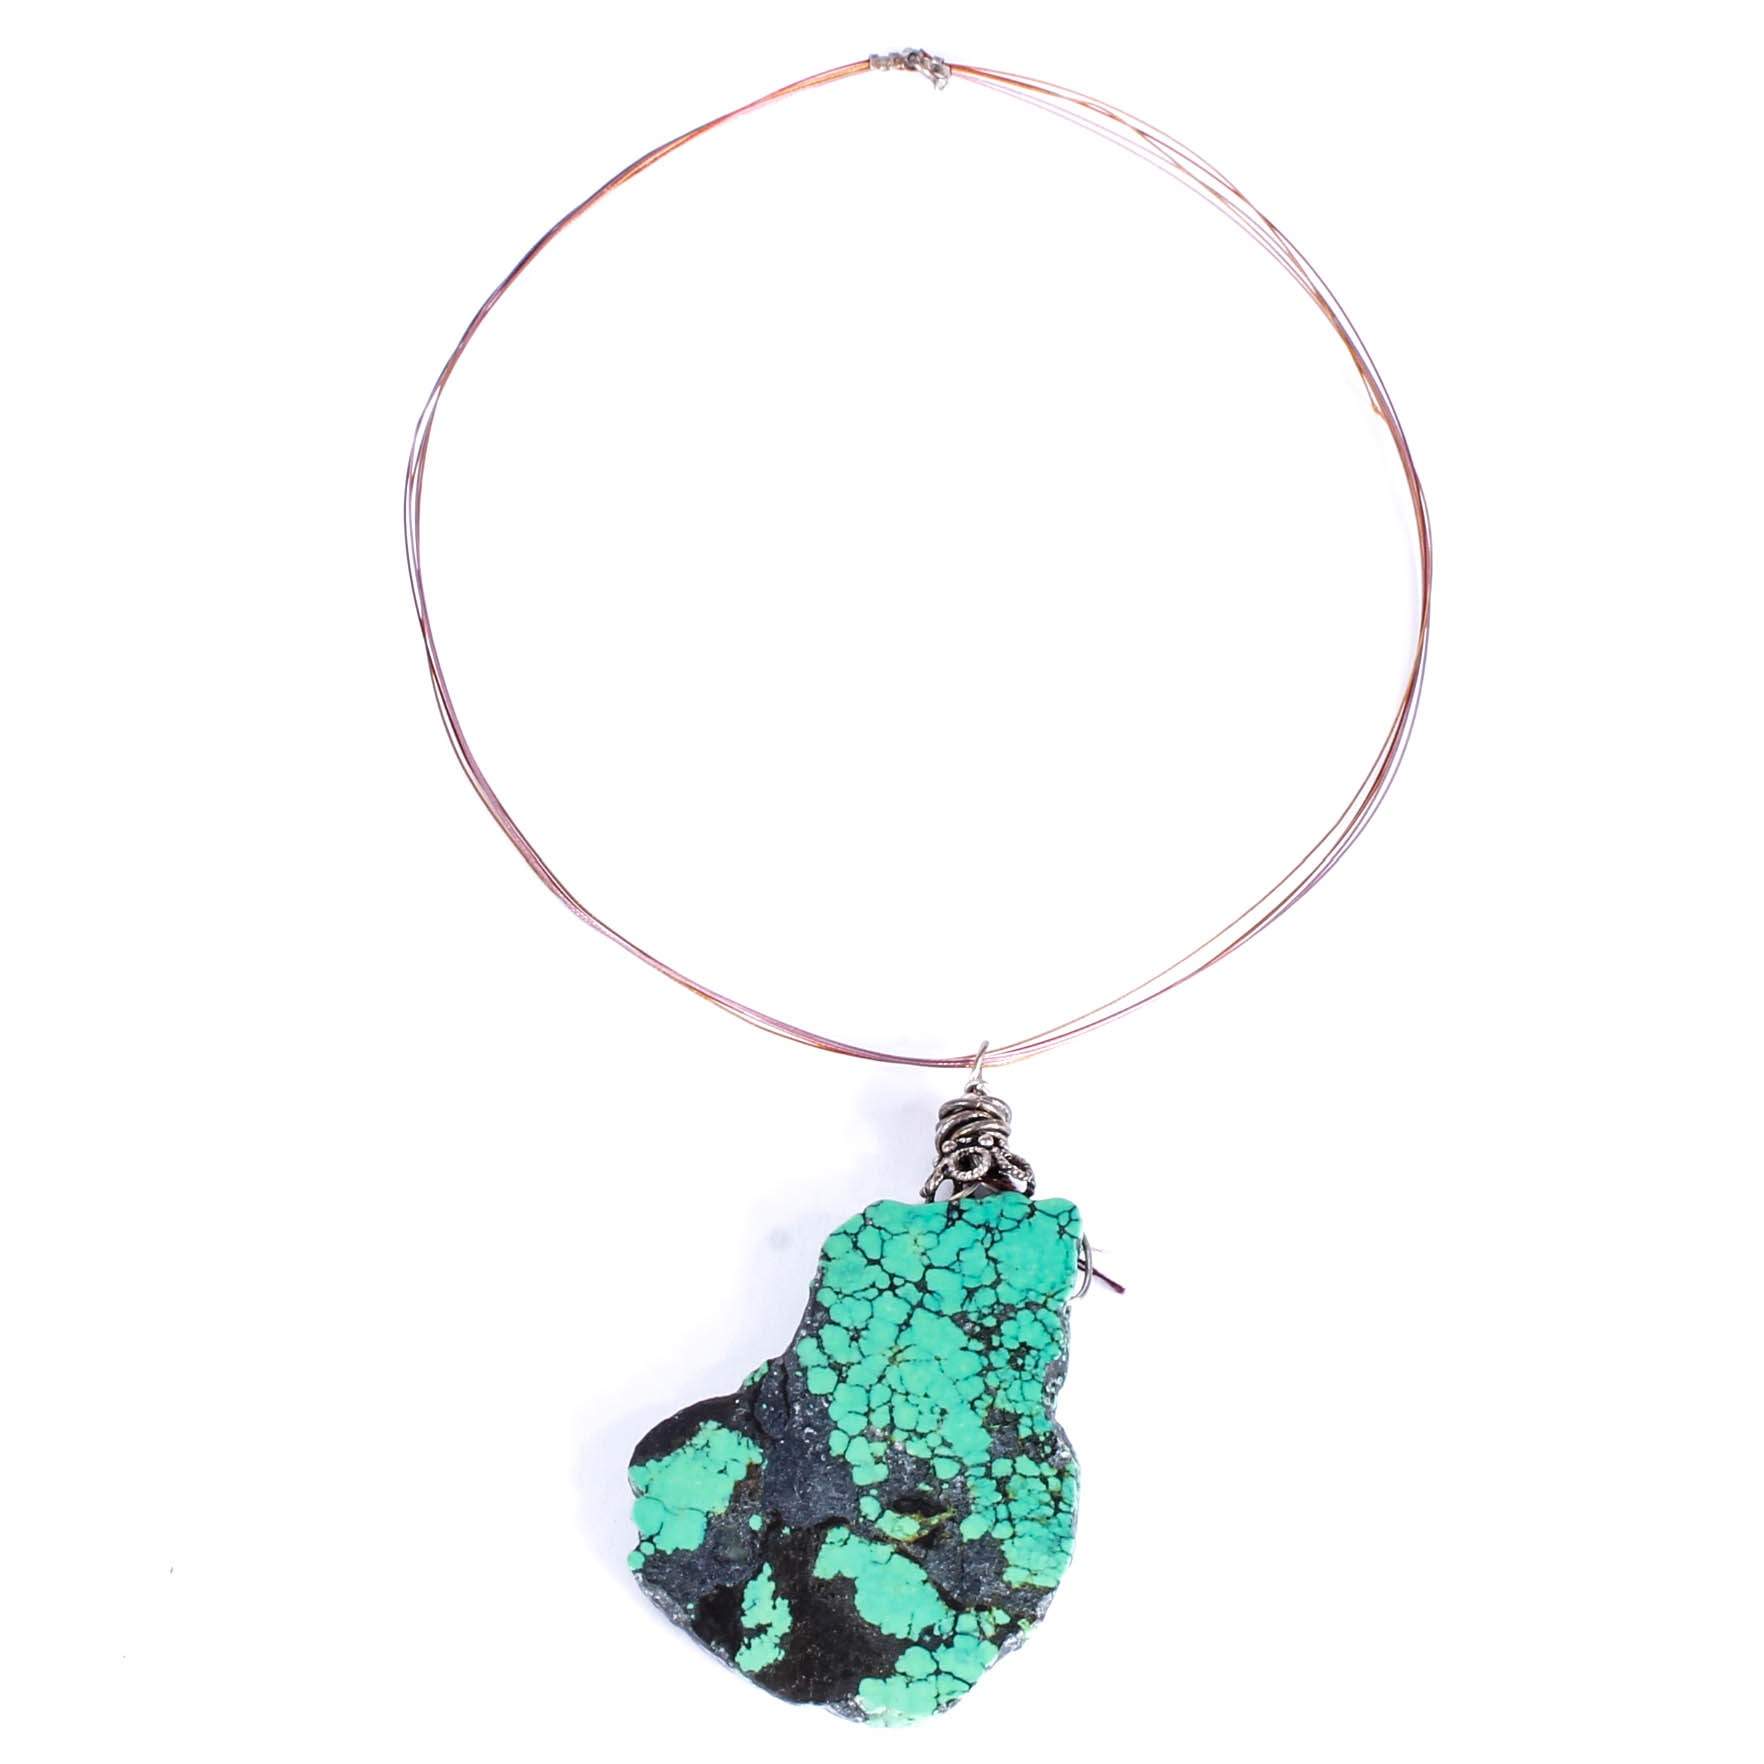 Collar Necklace with Stone Pendant